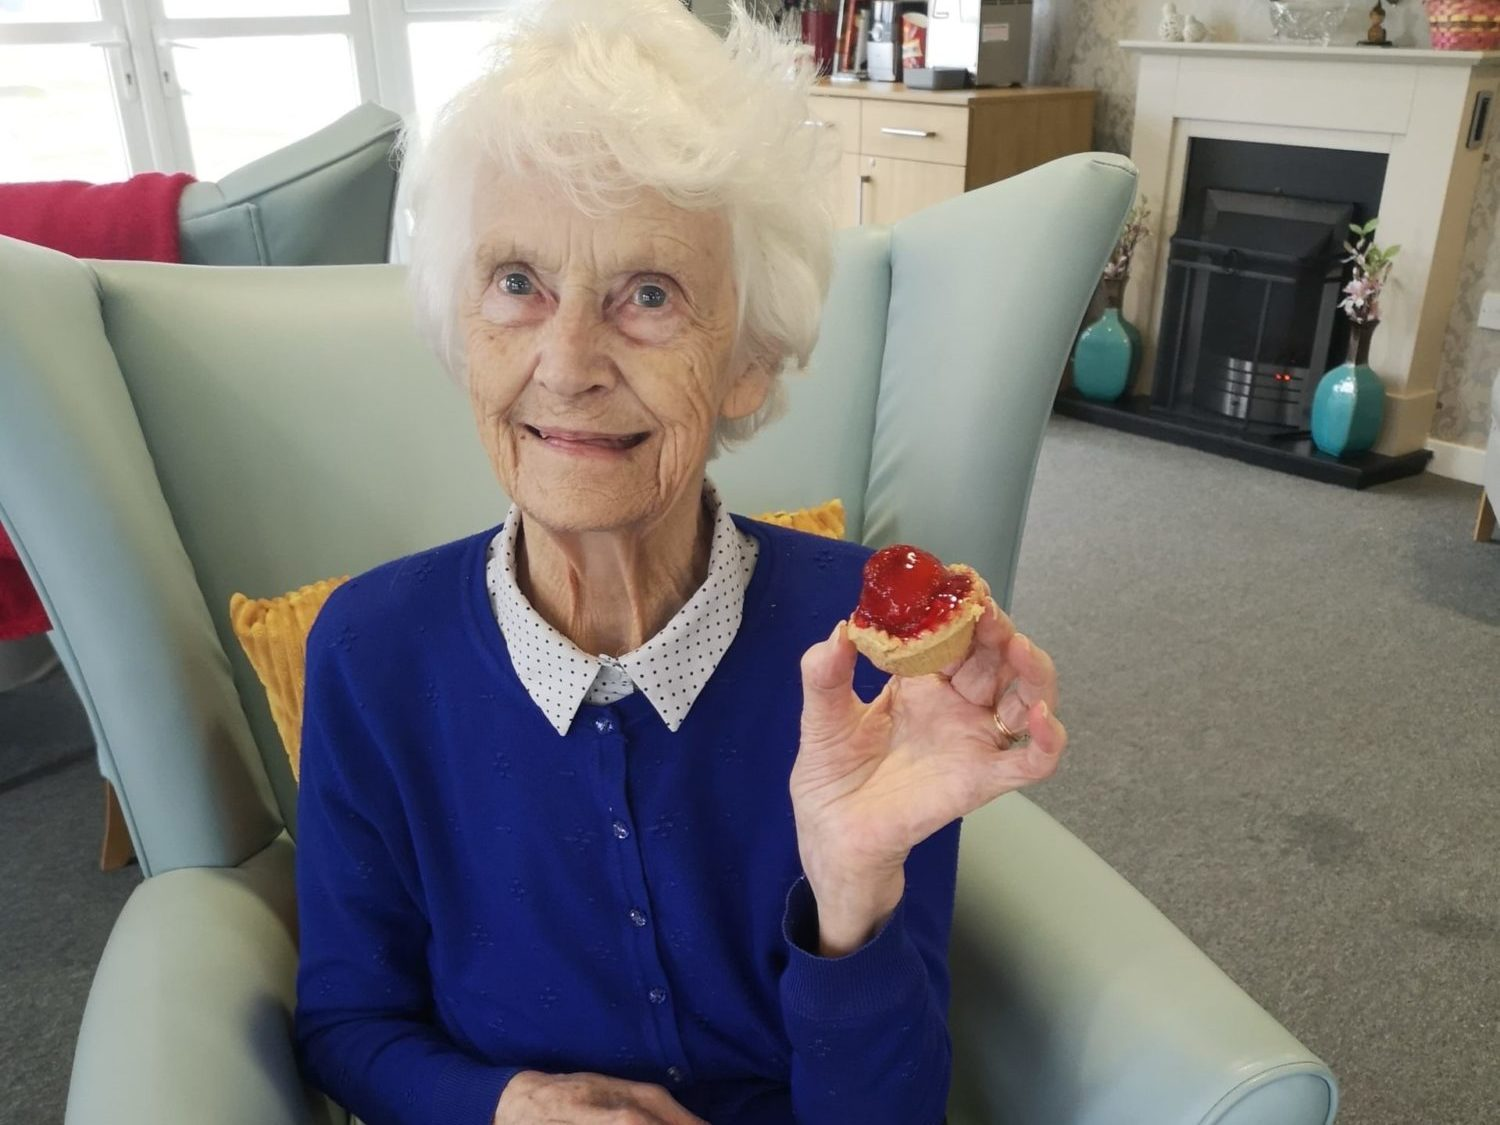 Huntly residents are delighted with their strawberry tarts